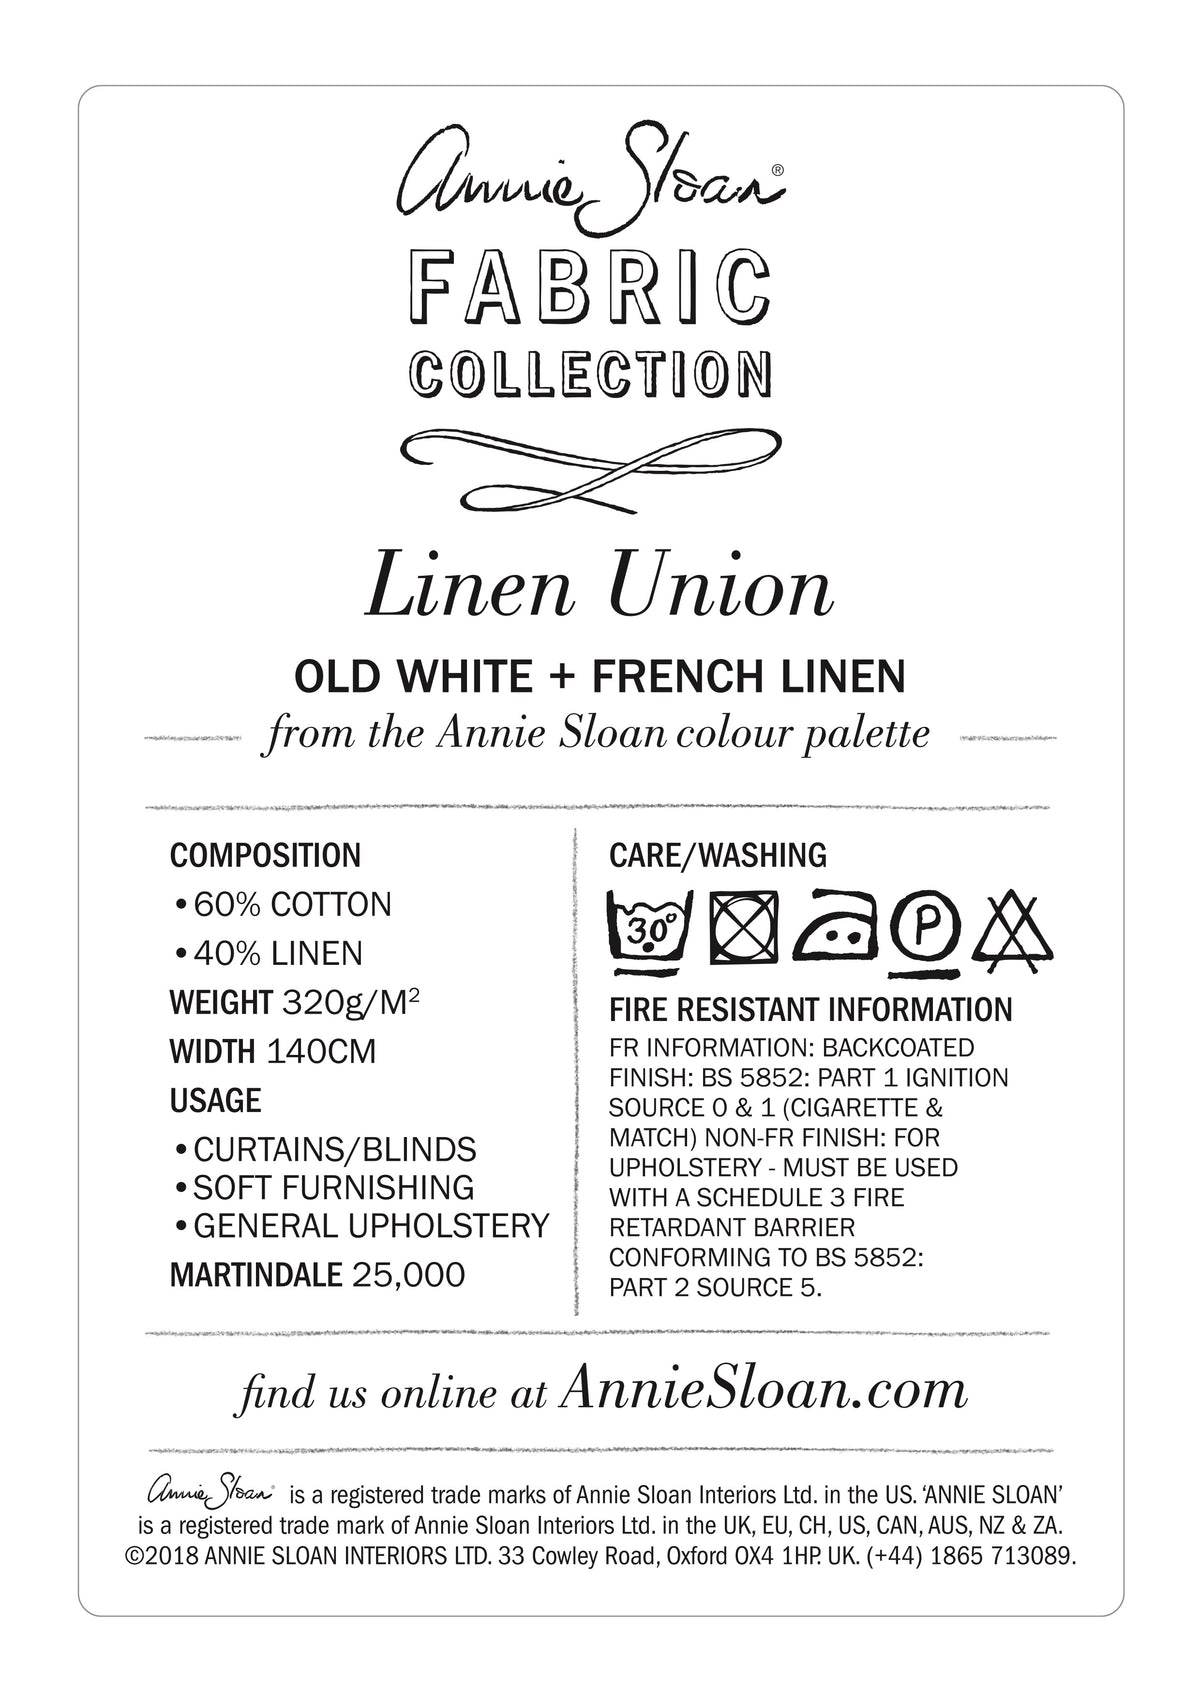 Linen Union in Old White + French Linen